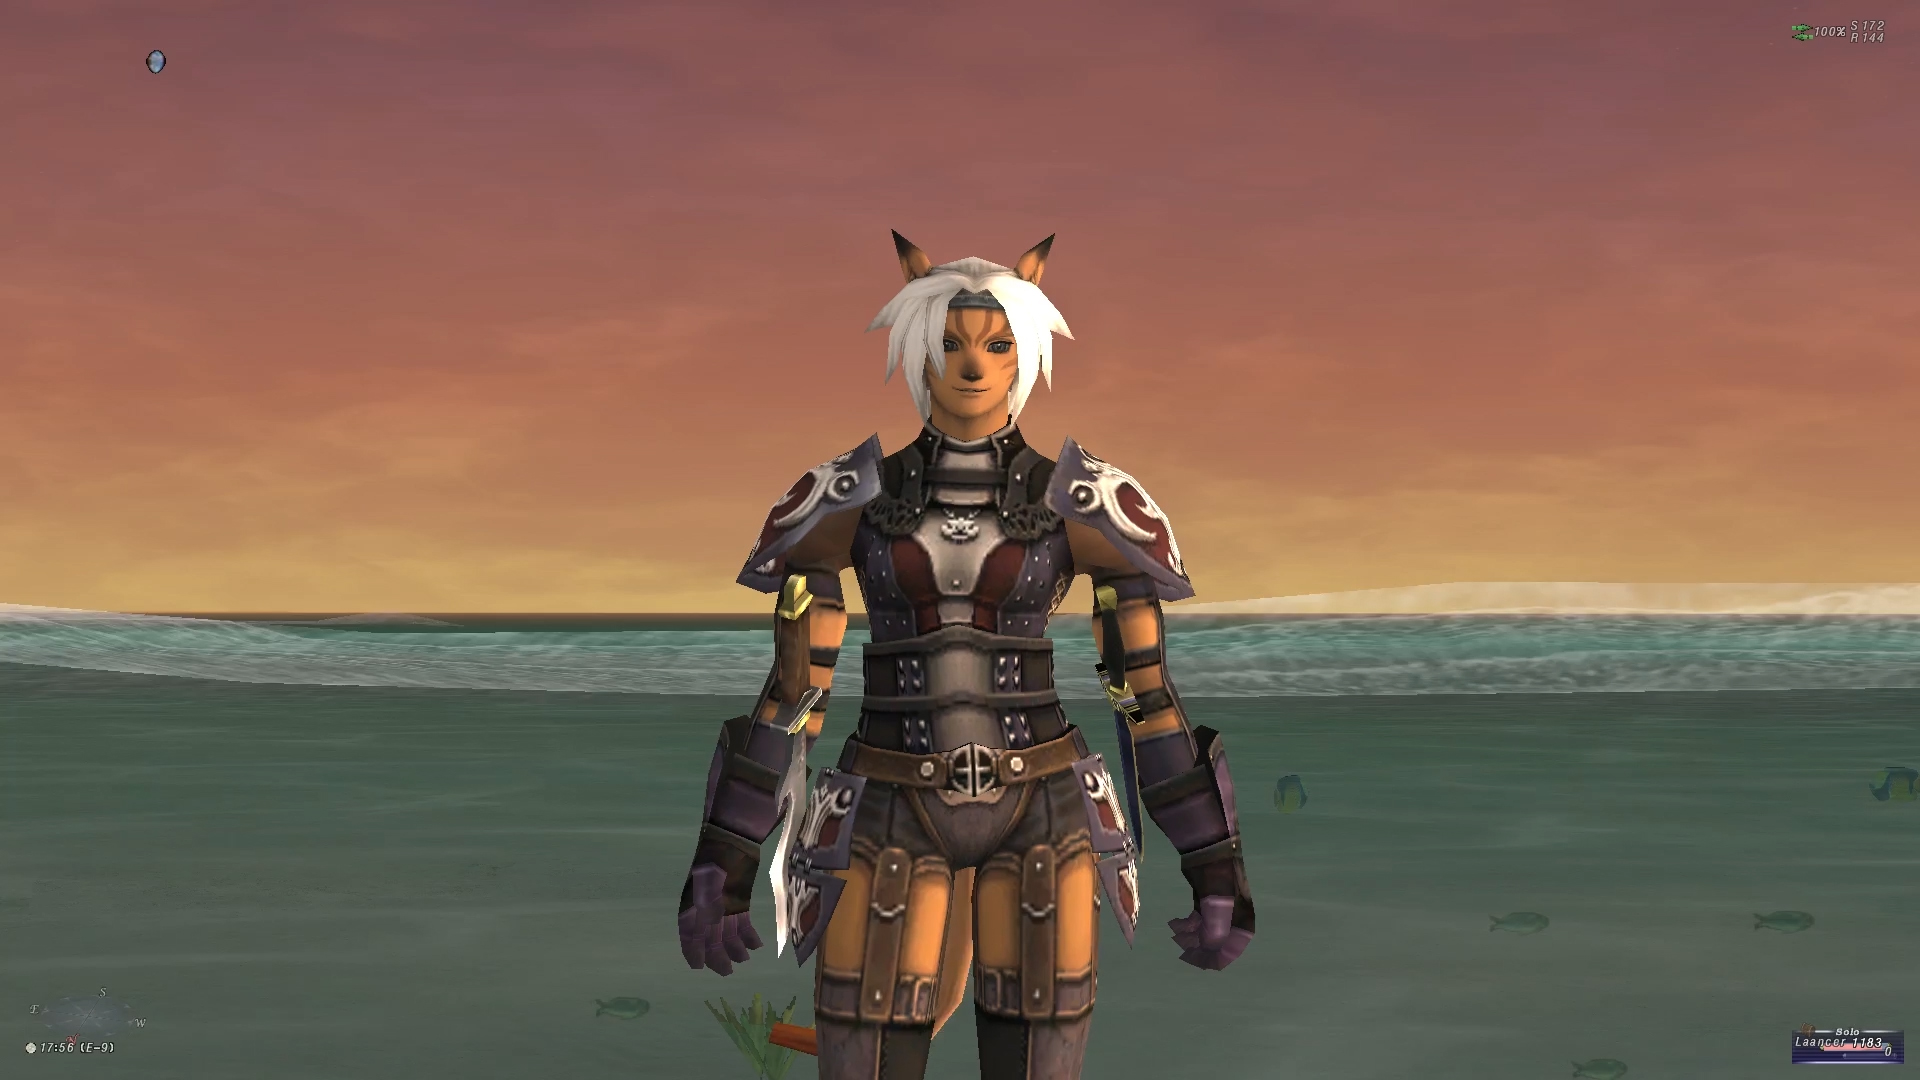 front-view of videogame character. the feminine avatar wears a mixture of leather armor with metal accents, and has white hair. The character stands on the shore of a beach with a sunrise in the background.